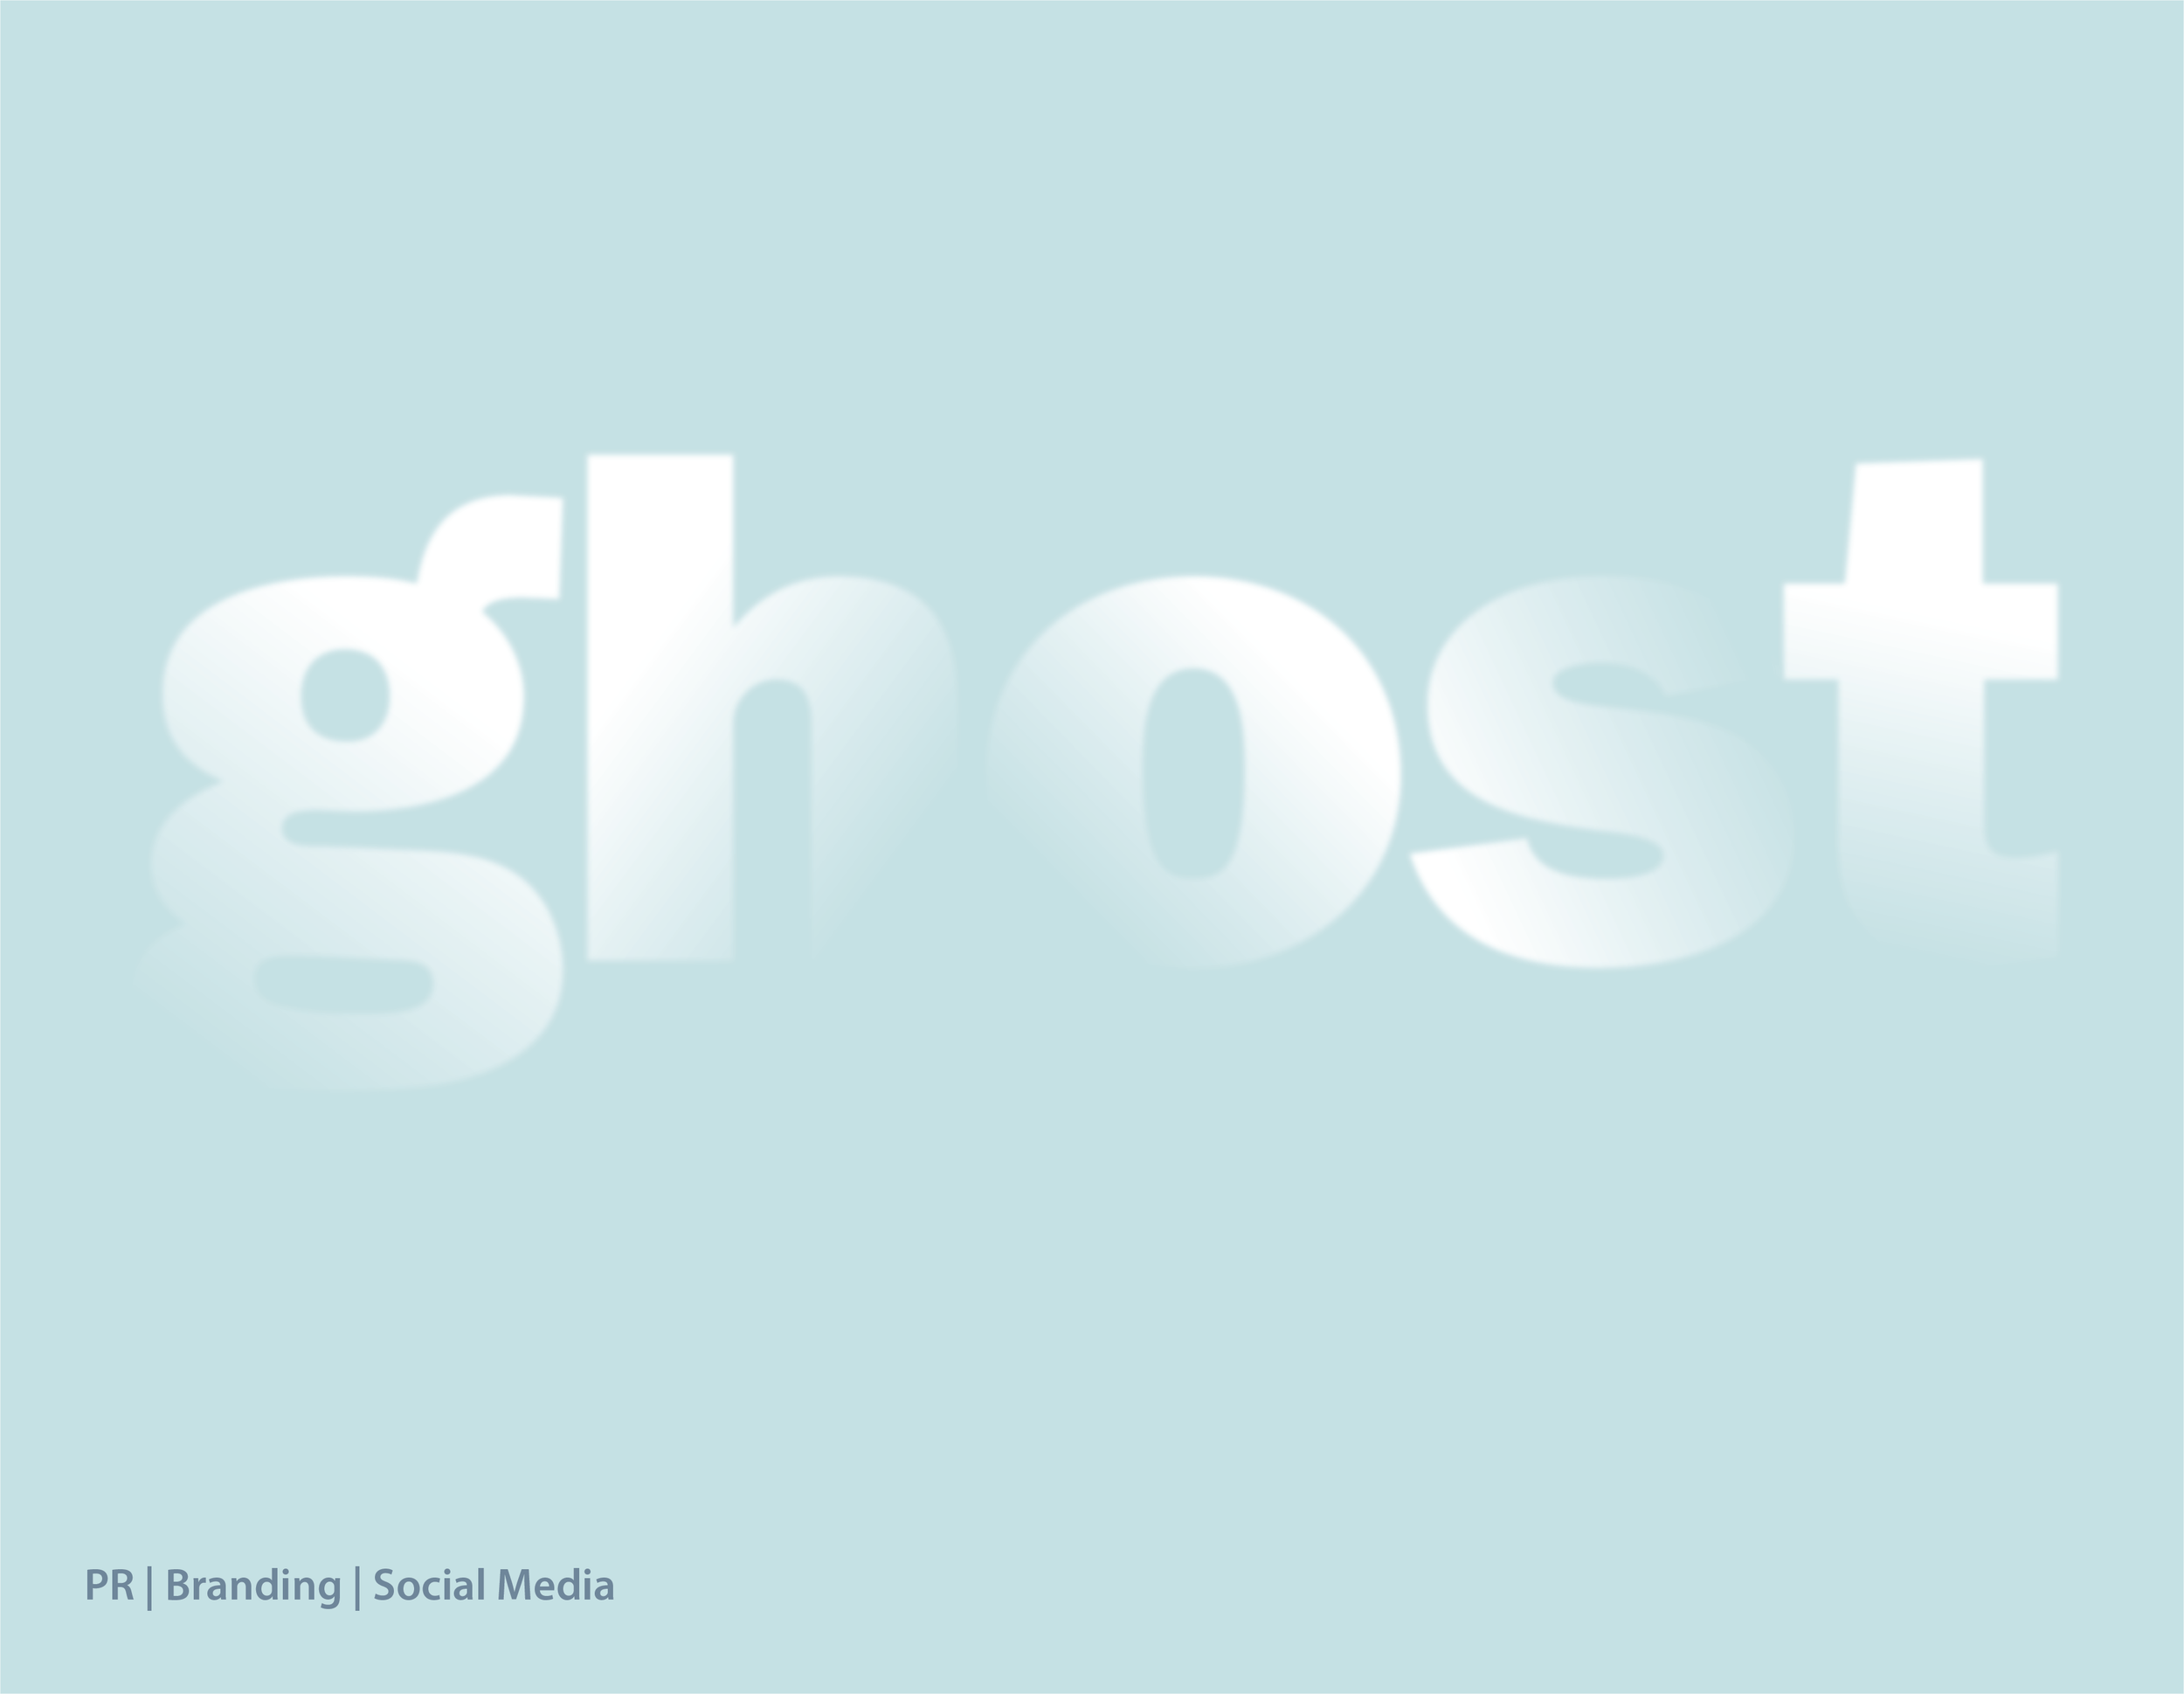 ghost_exterior_sign2-01.png